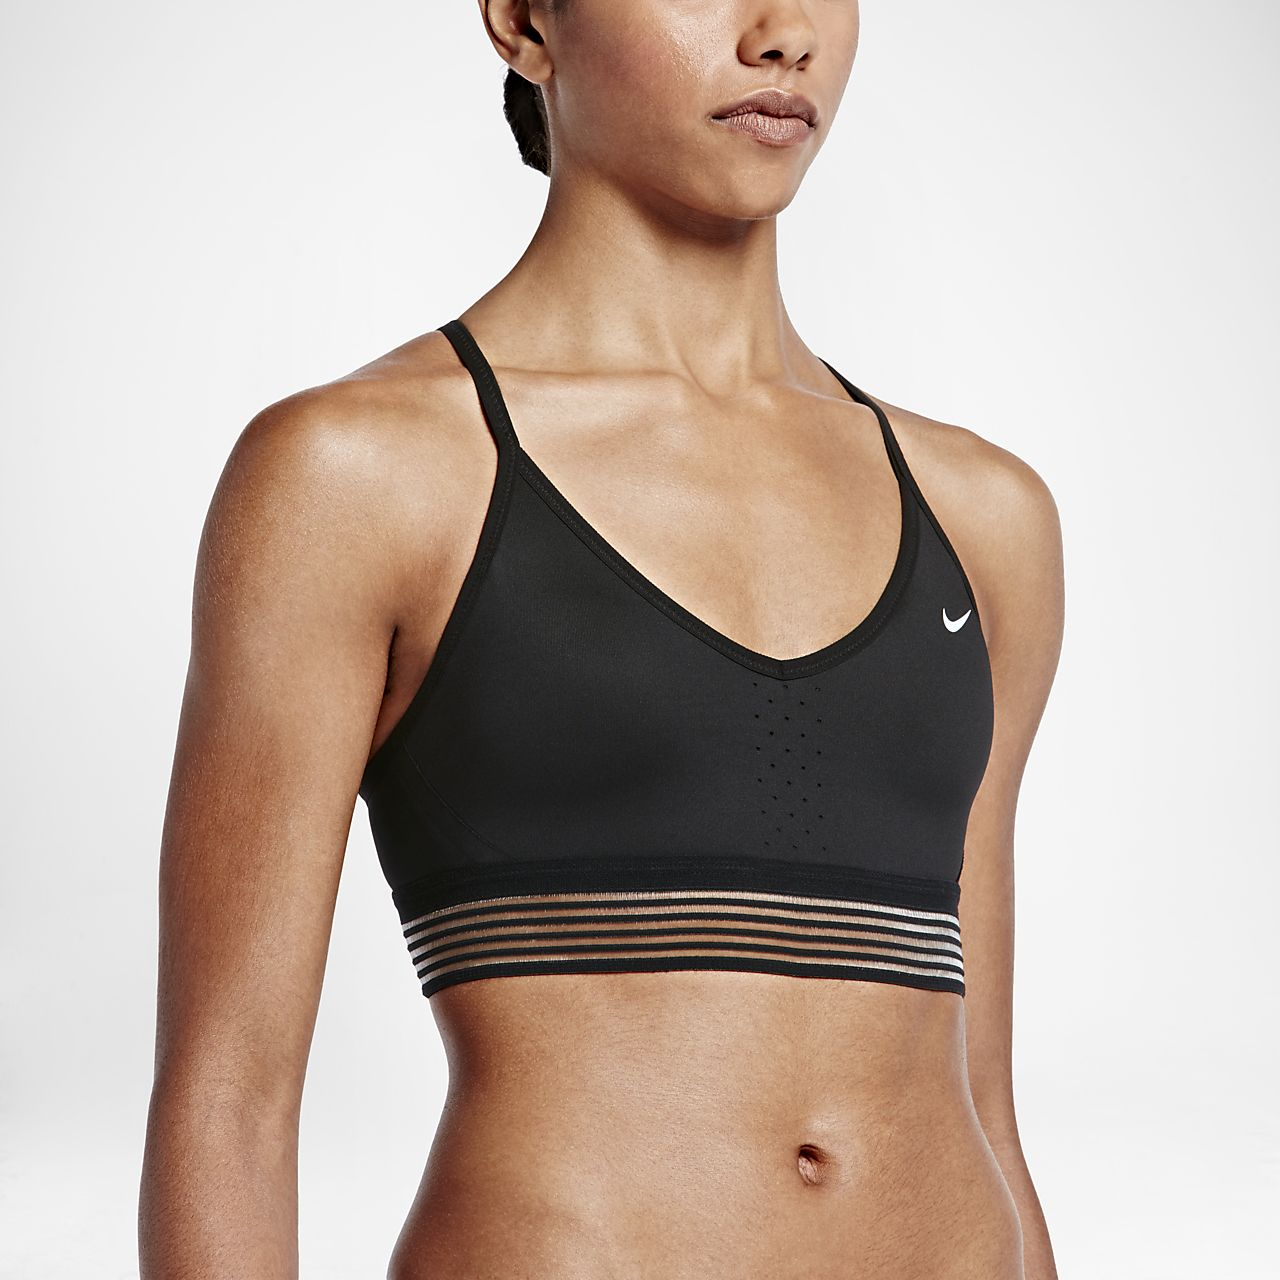 ... Nike Indy Cool Women's Light Support Bra